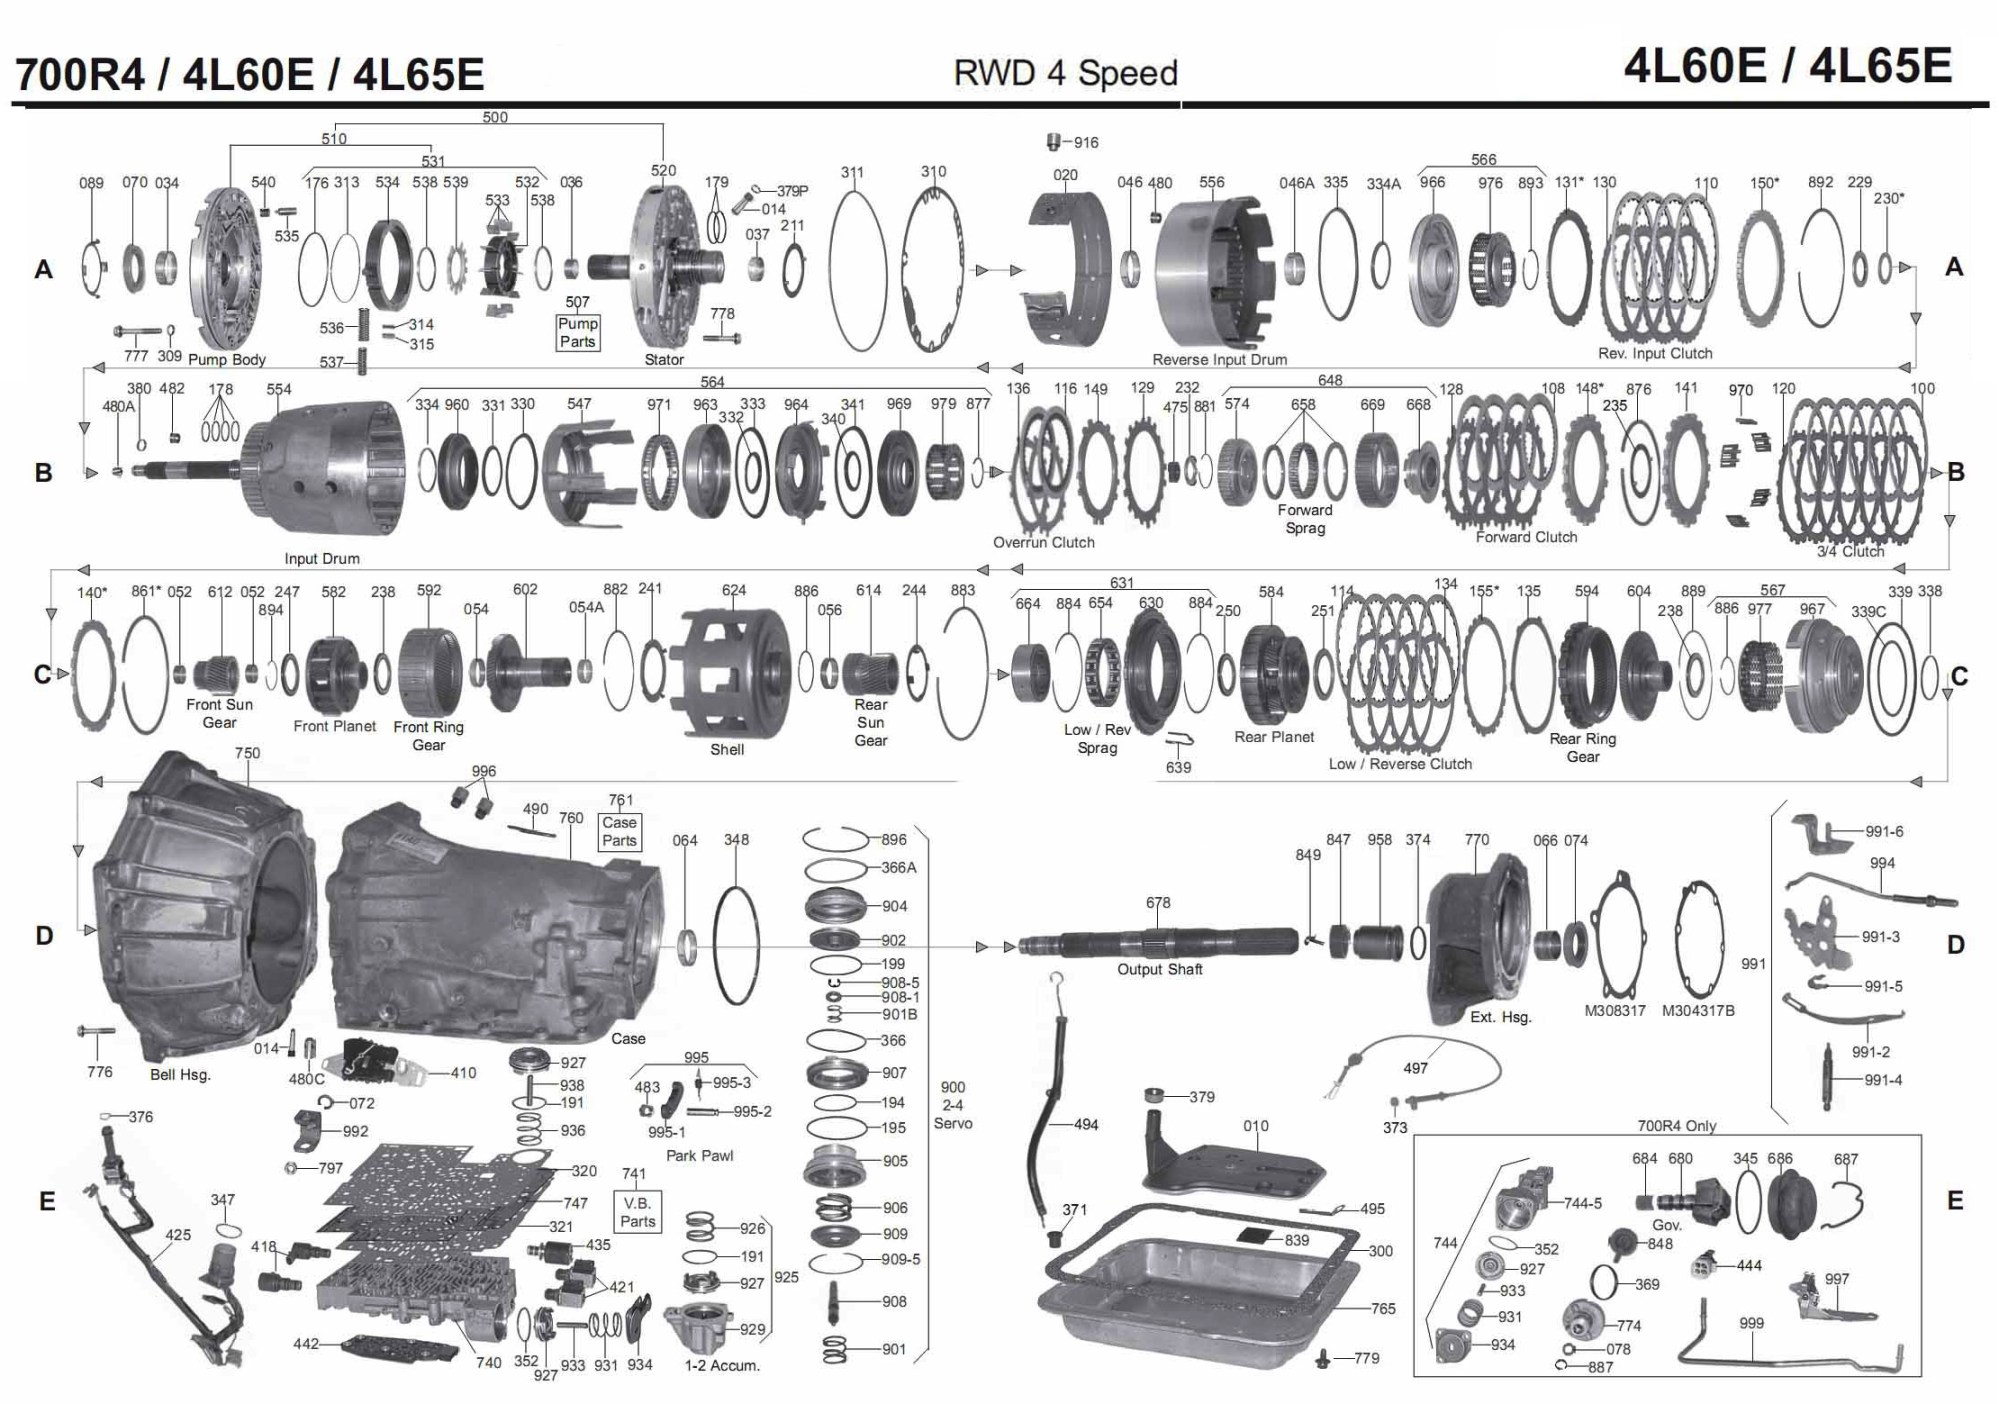 hight resolution of gm 700r4 4l60e transmission parts diagram